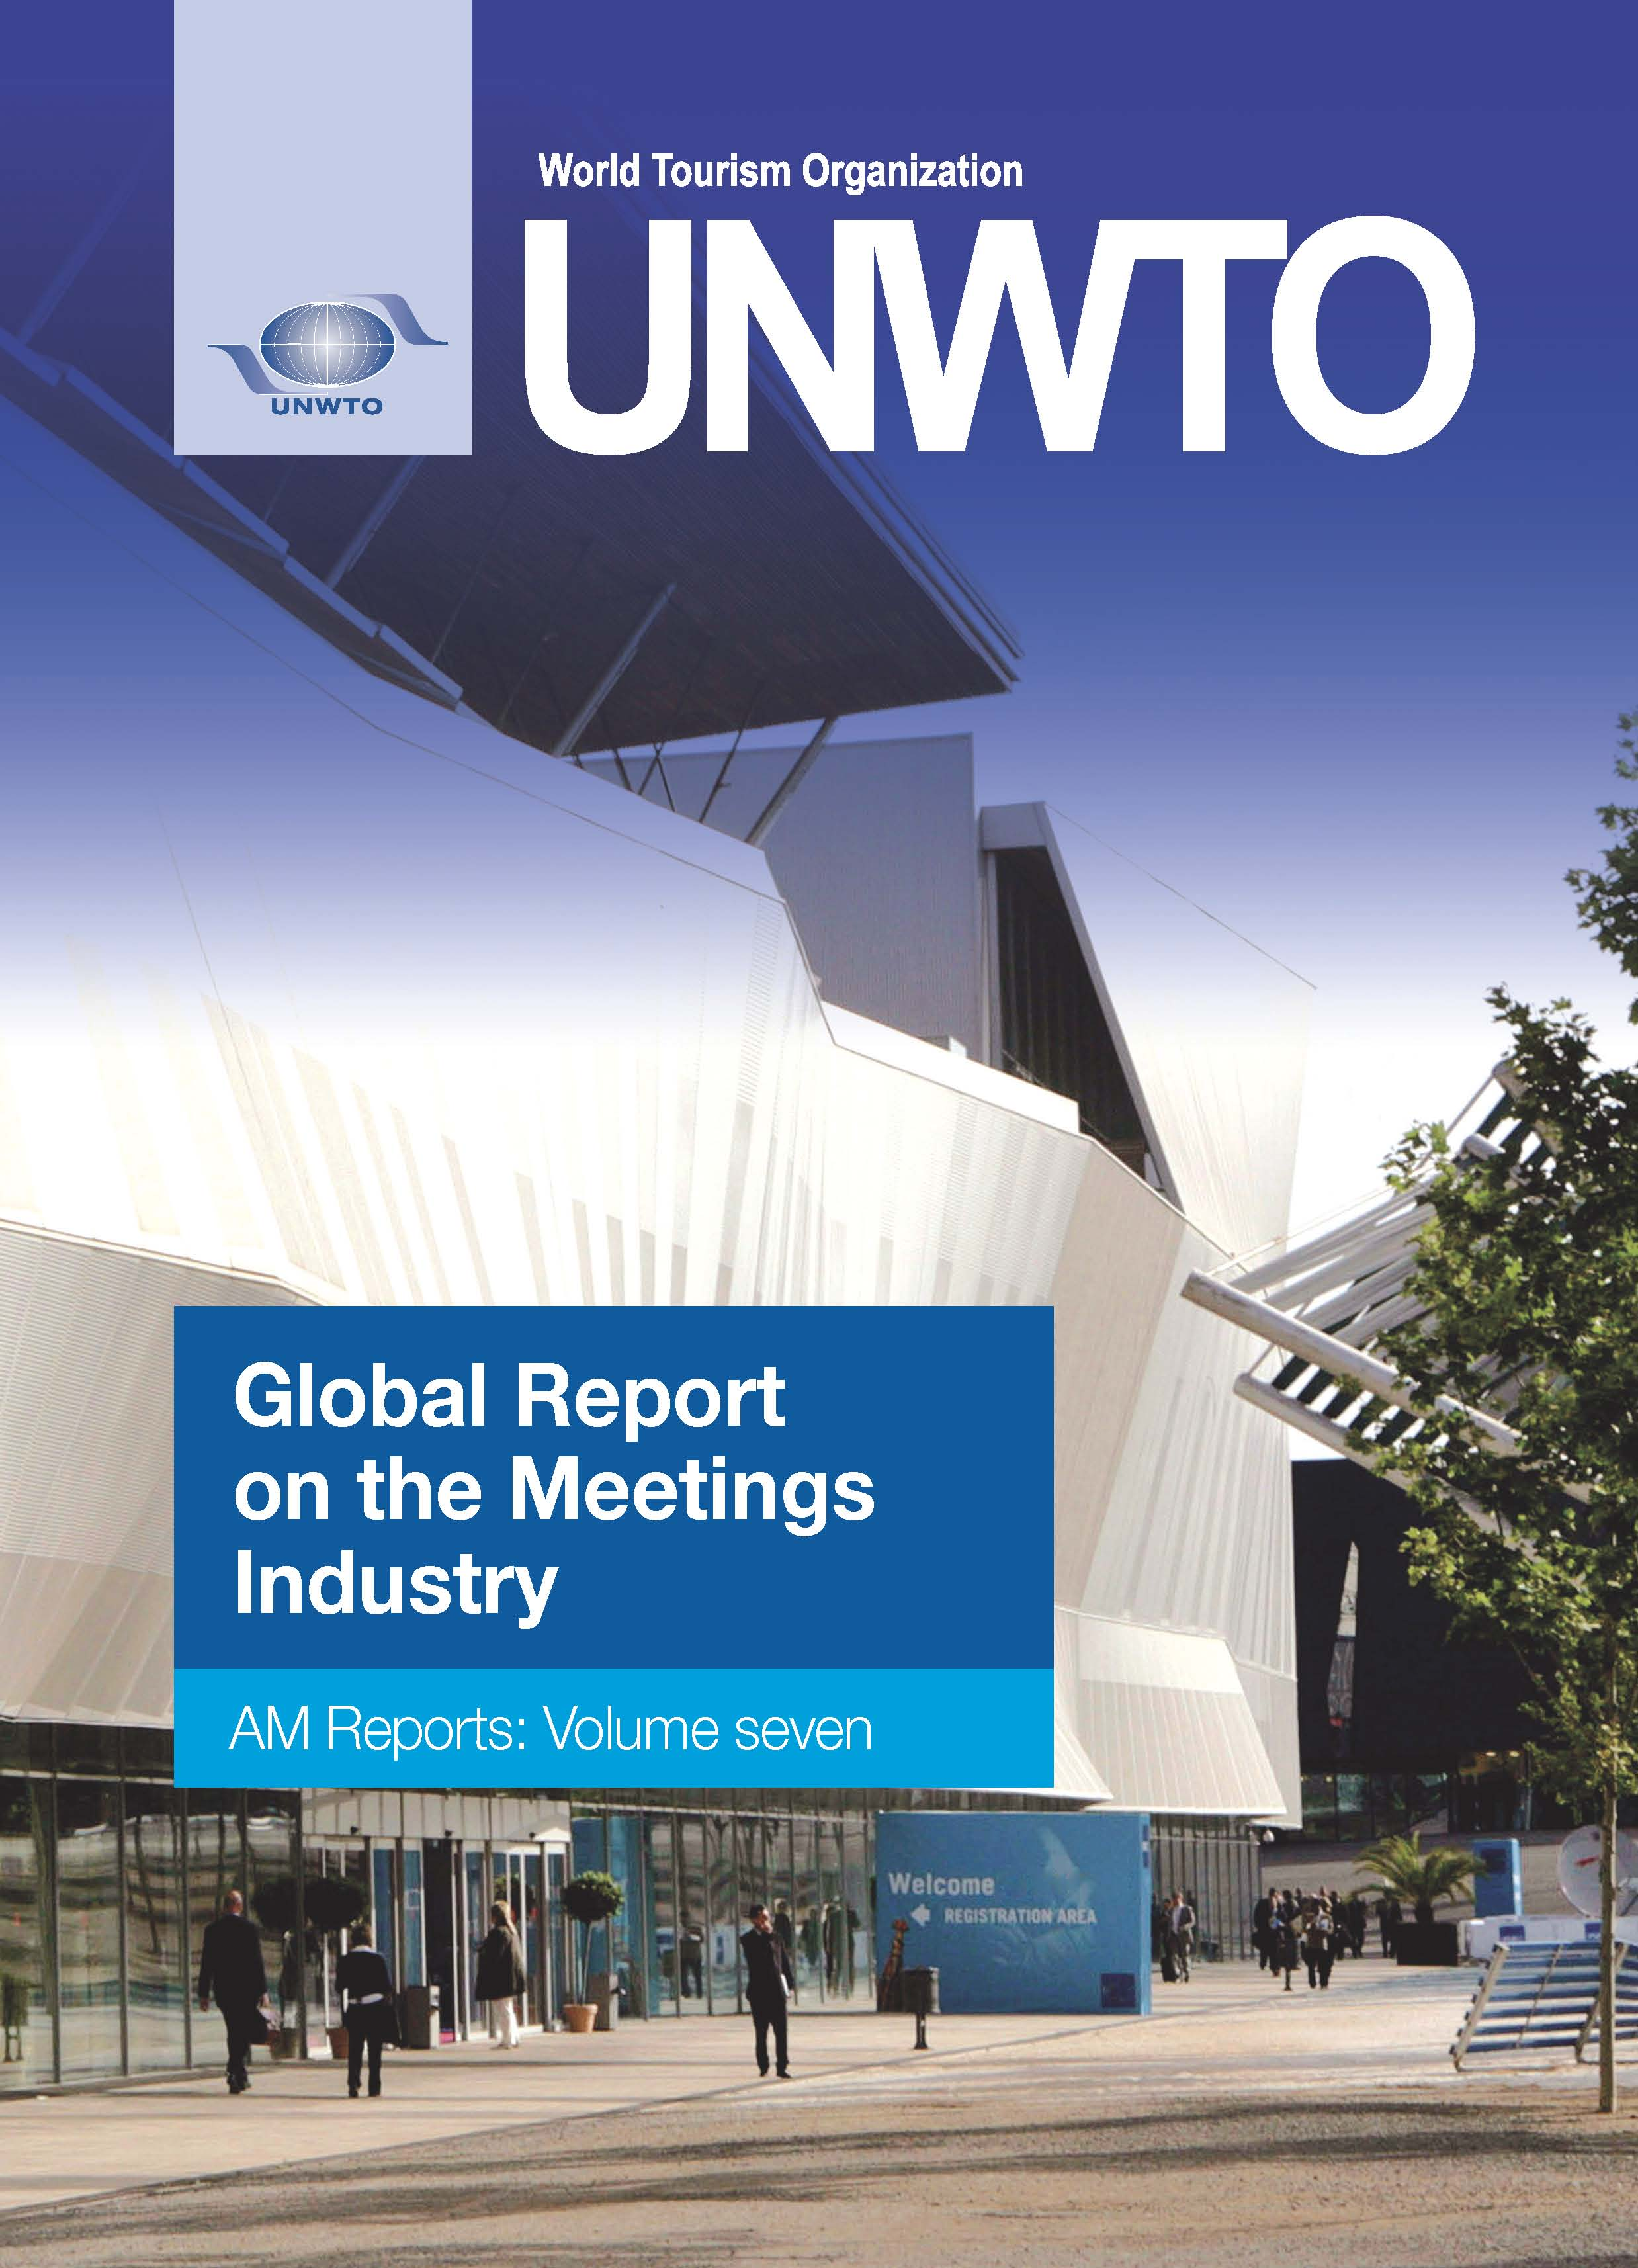 Global Report on the Meetings Industry